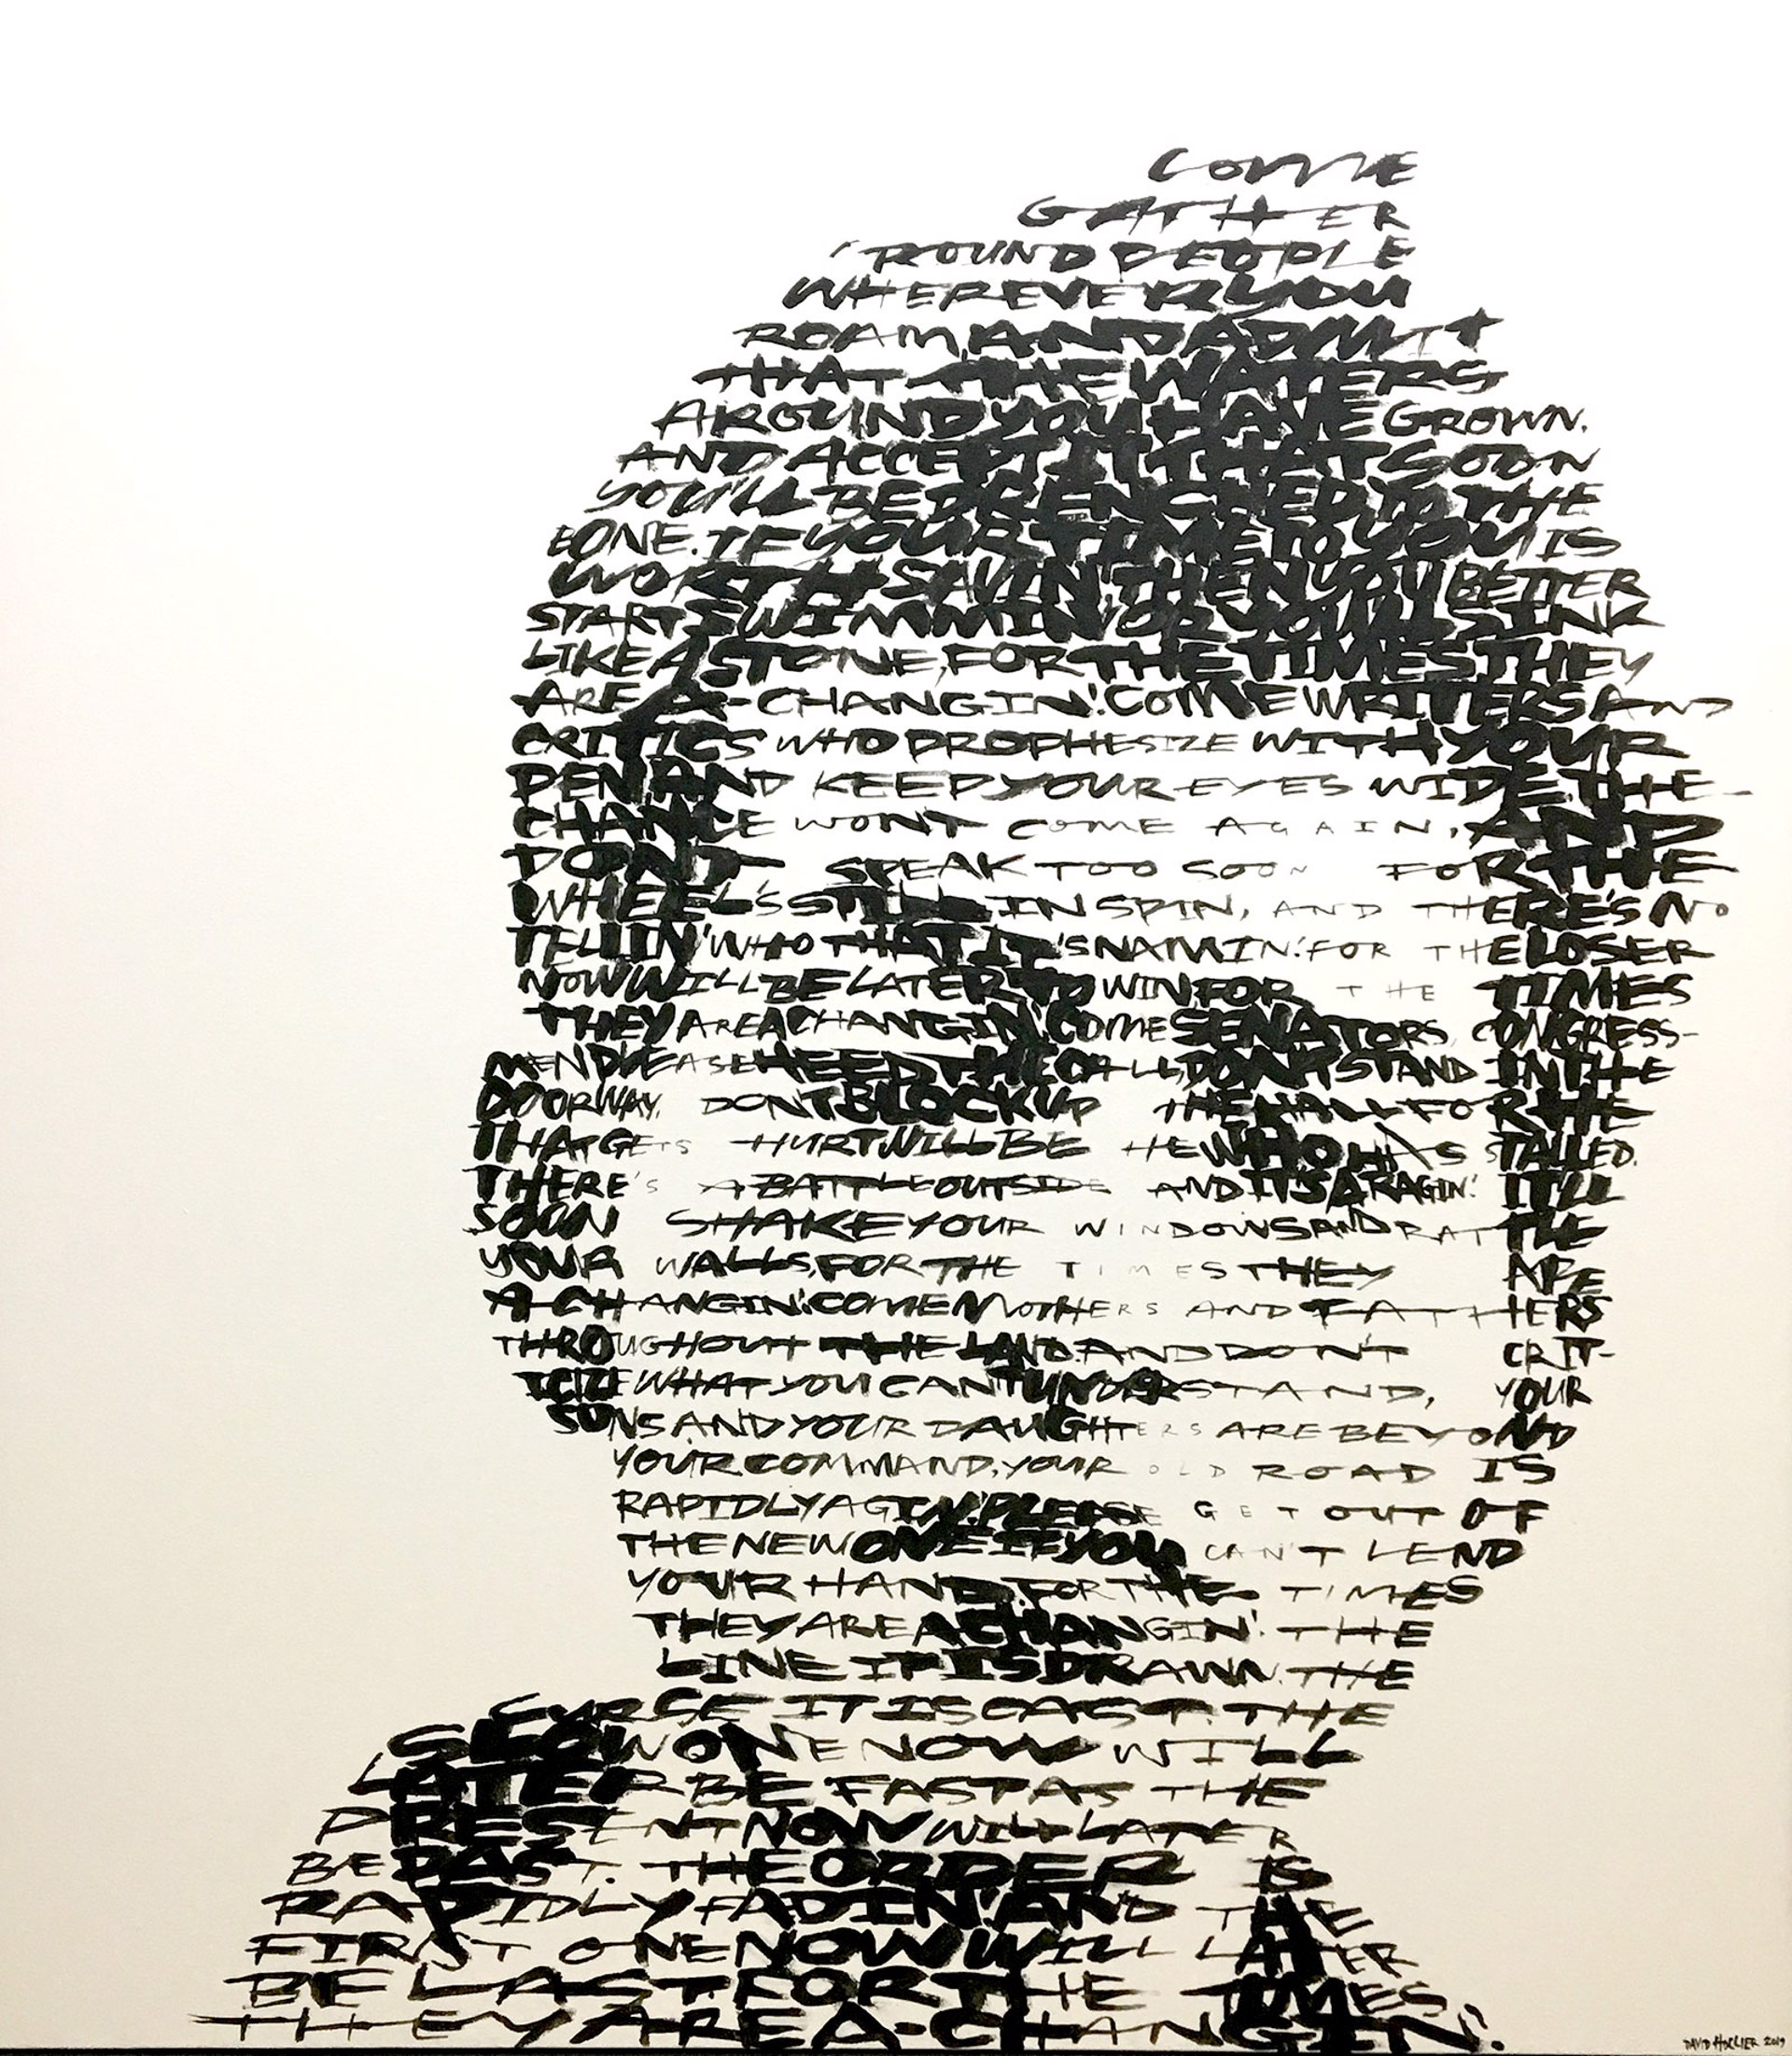 Bob Dylan (Text: Times They Are A Changin') by David Hollier